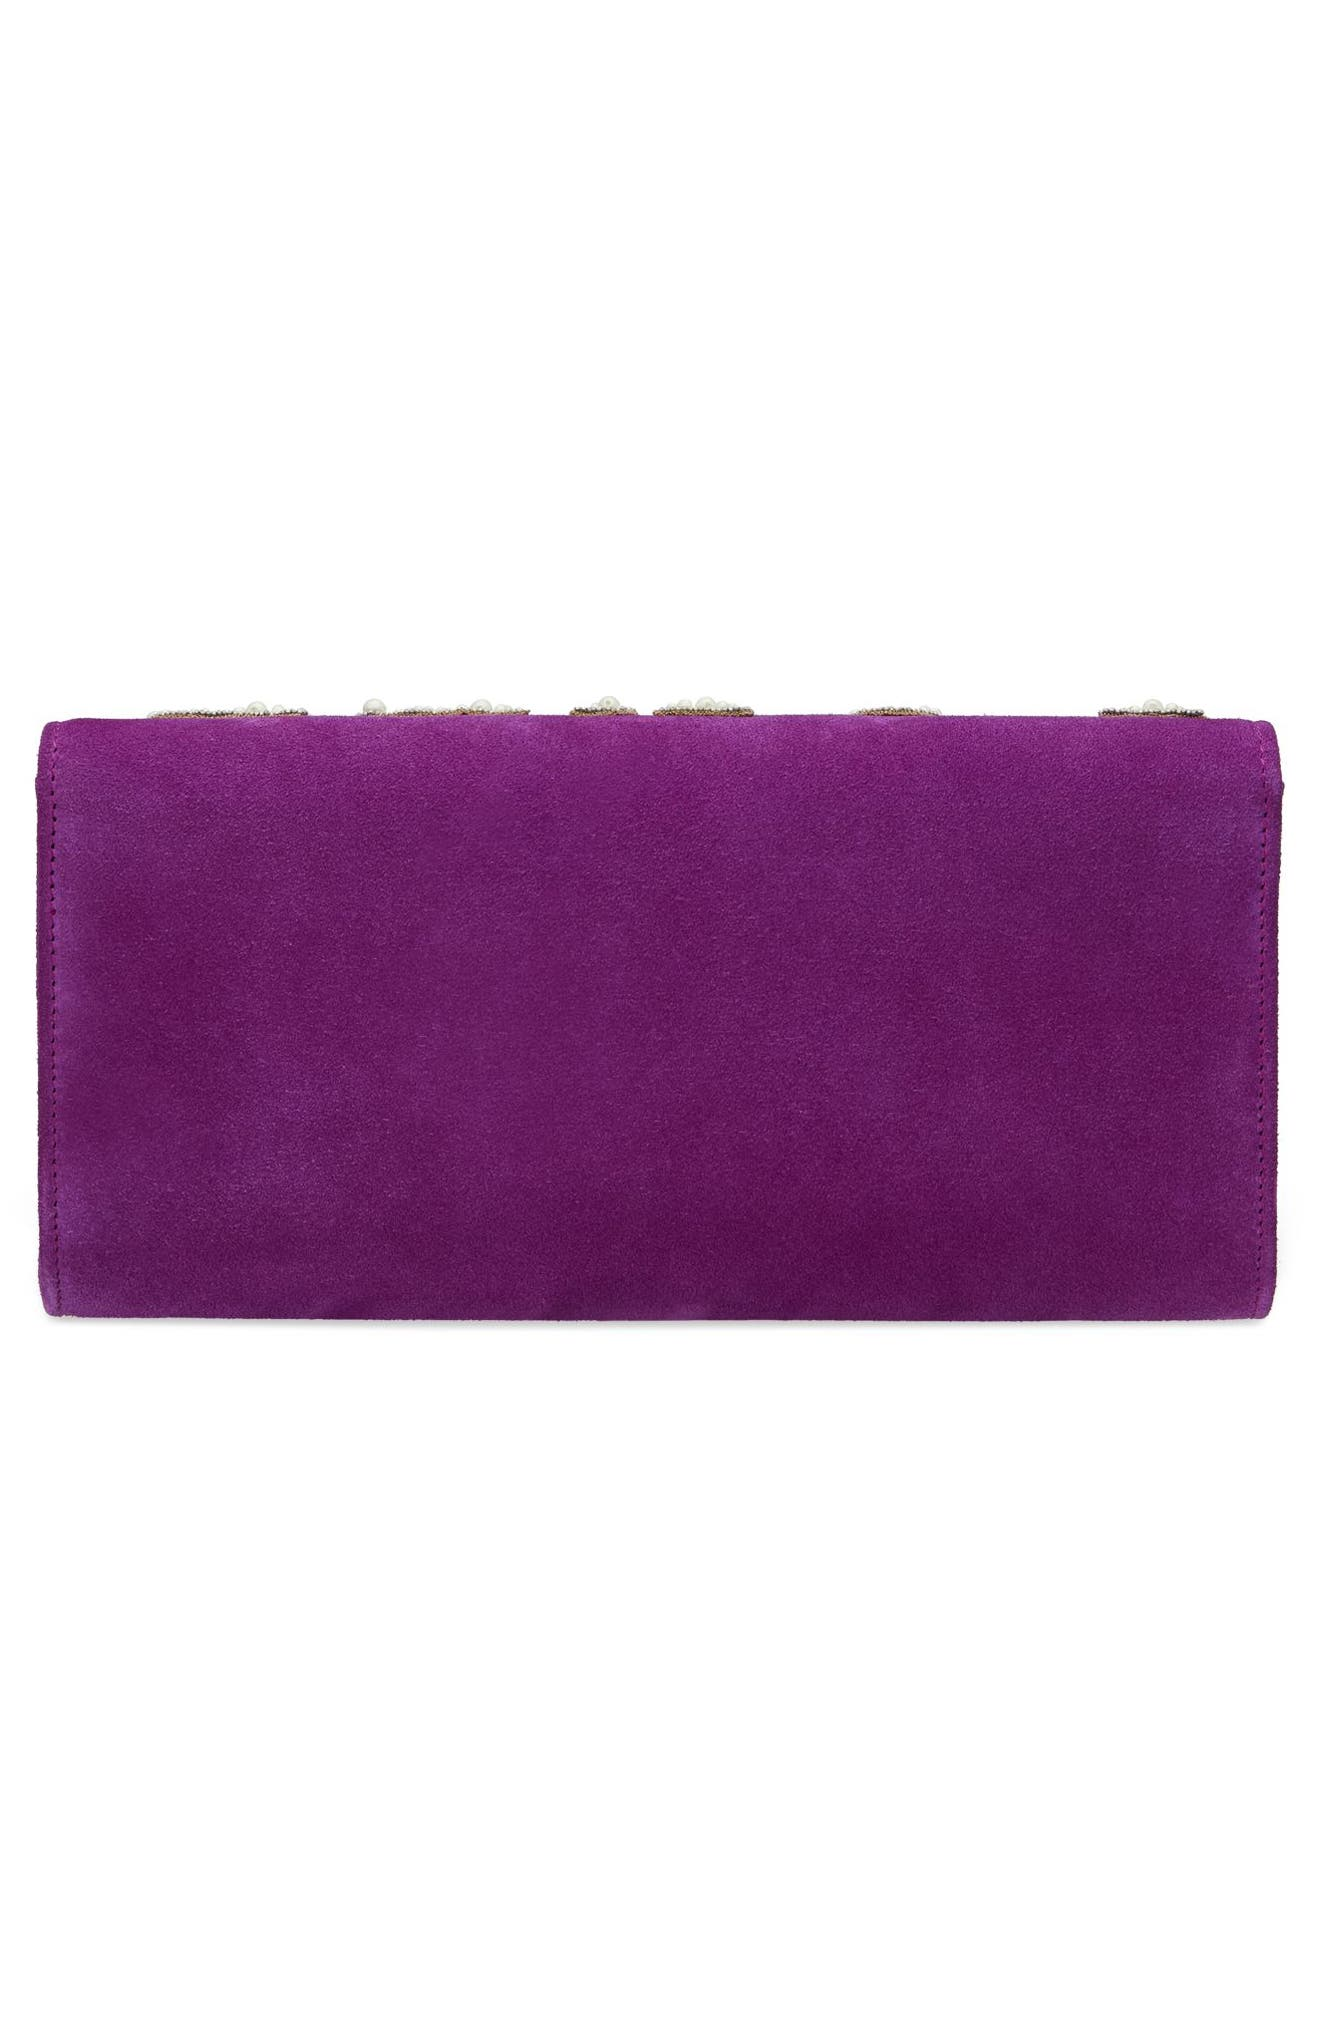 Alternate Image 2  - Gucci Dionysus Suede Clutch